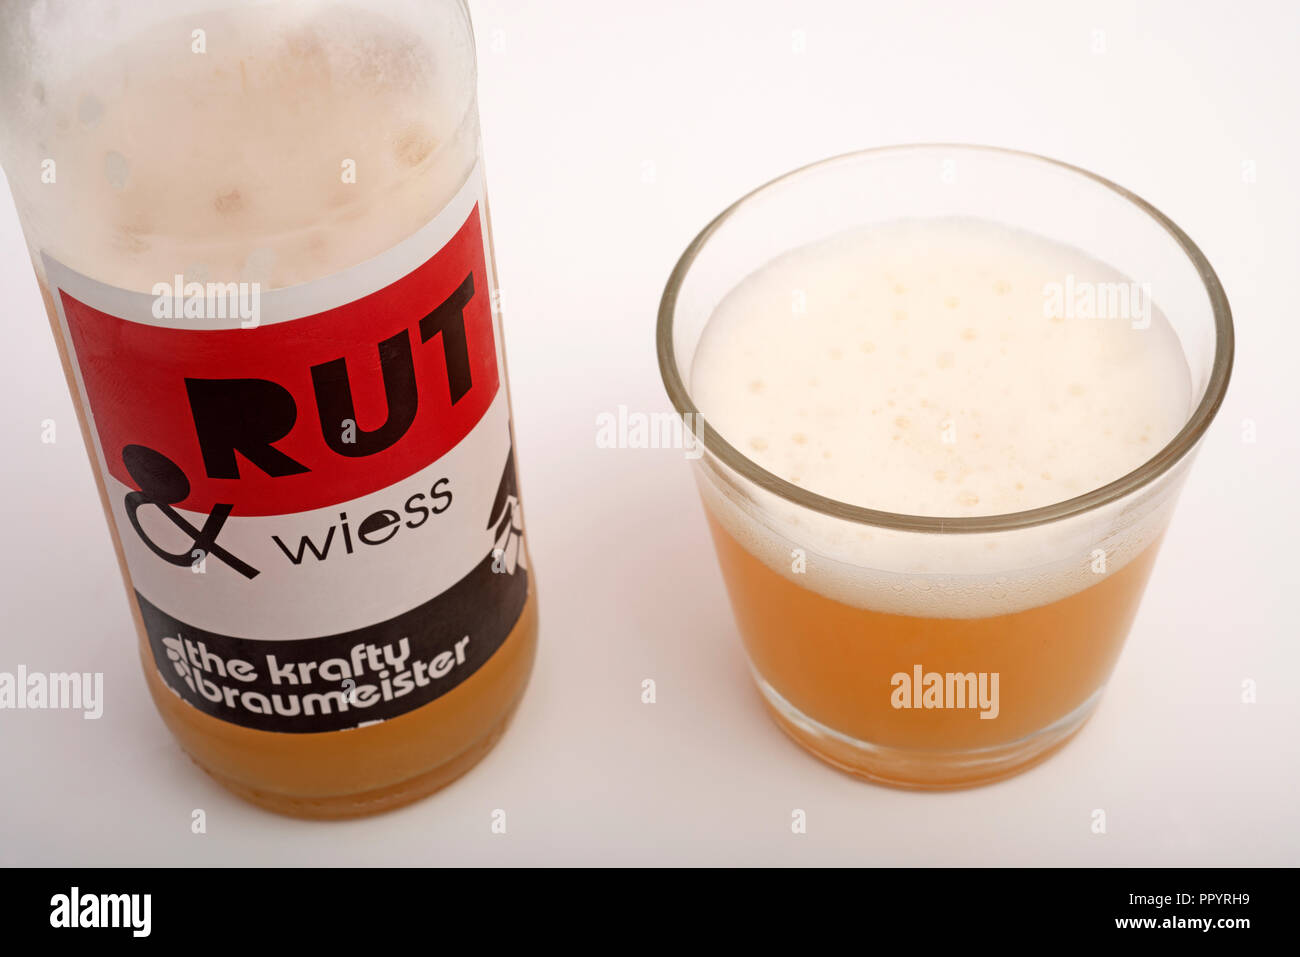 Rut and Wiess the crafty braumeister German beer - Stock Image